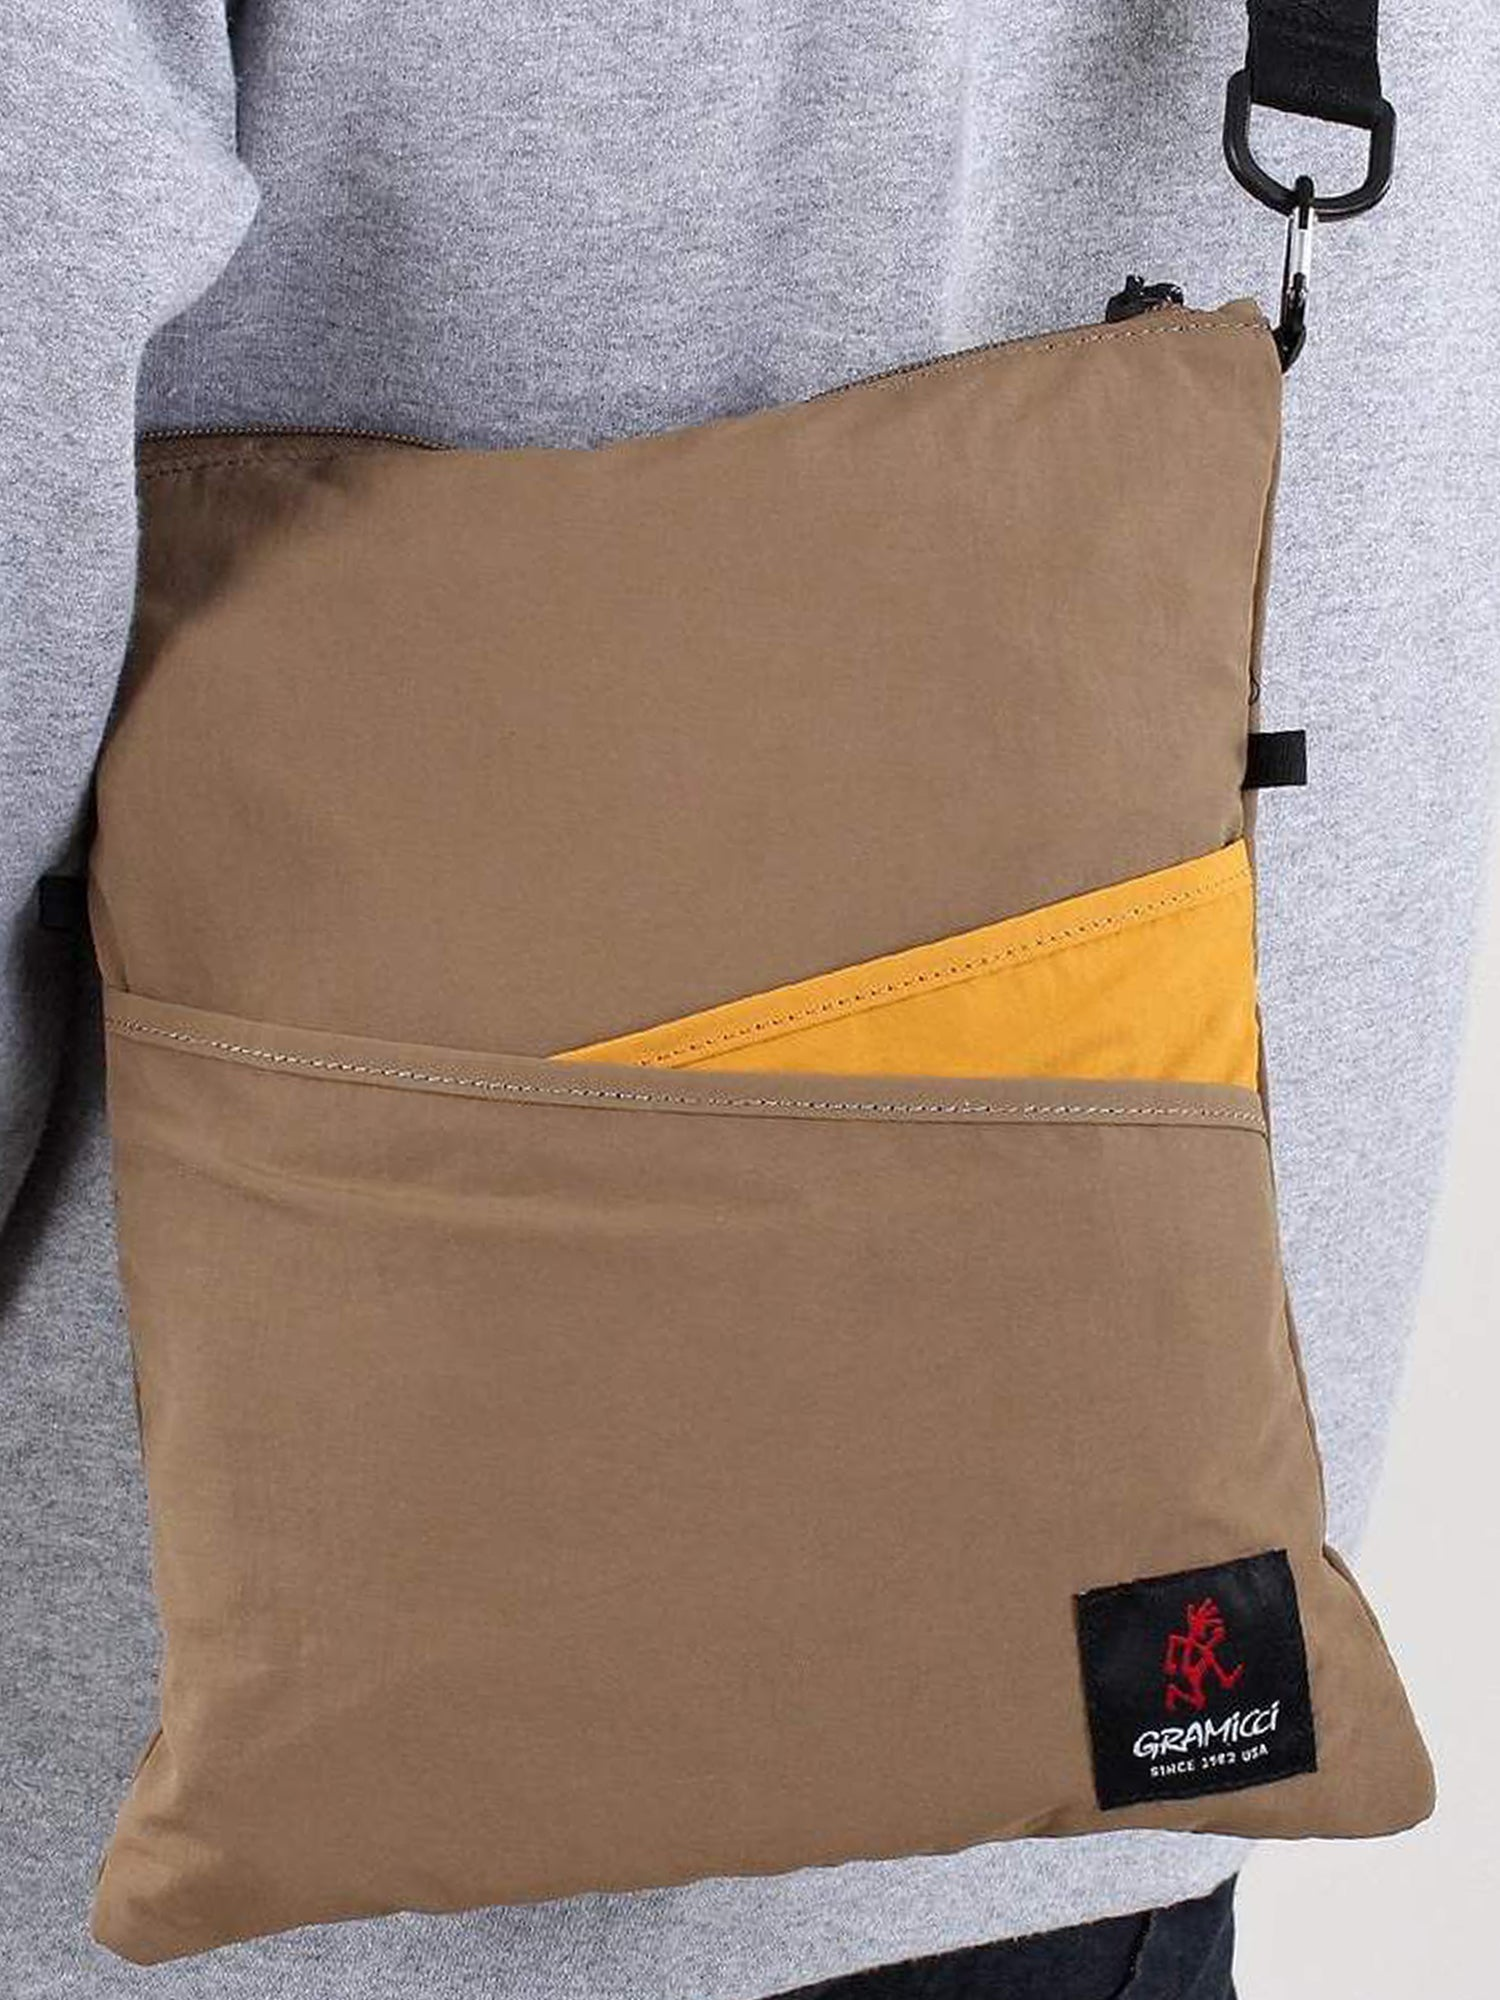 Gramicci 2Way Sacoche Bag (Tan)